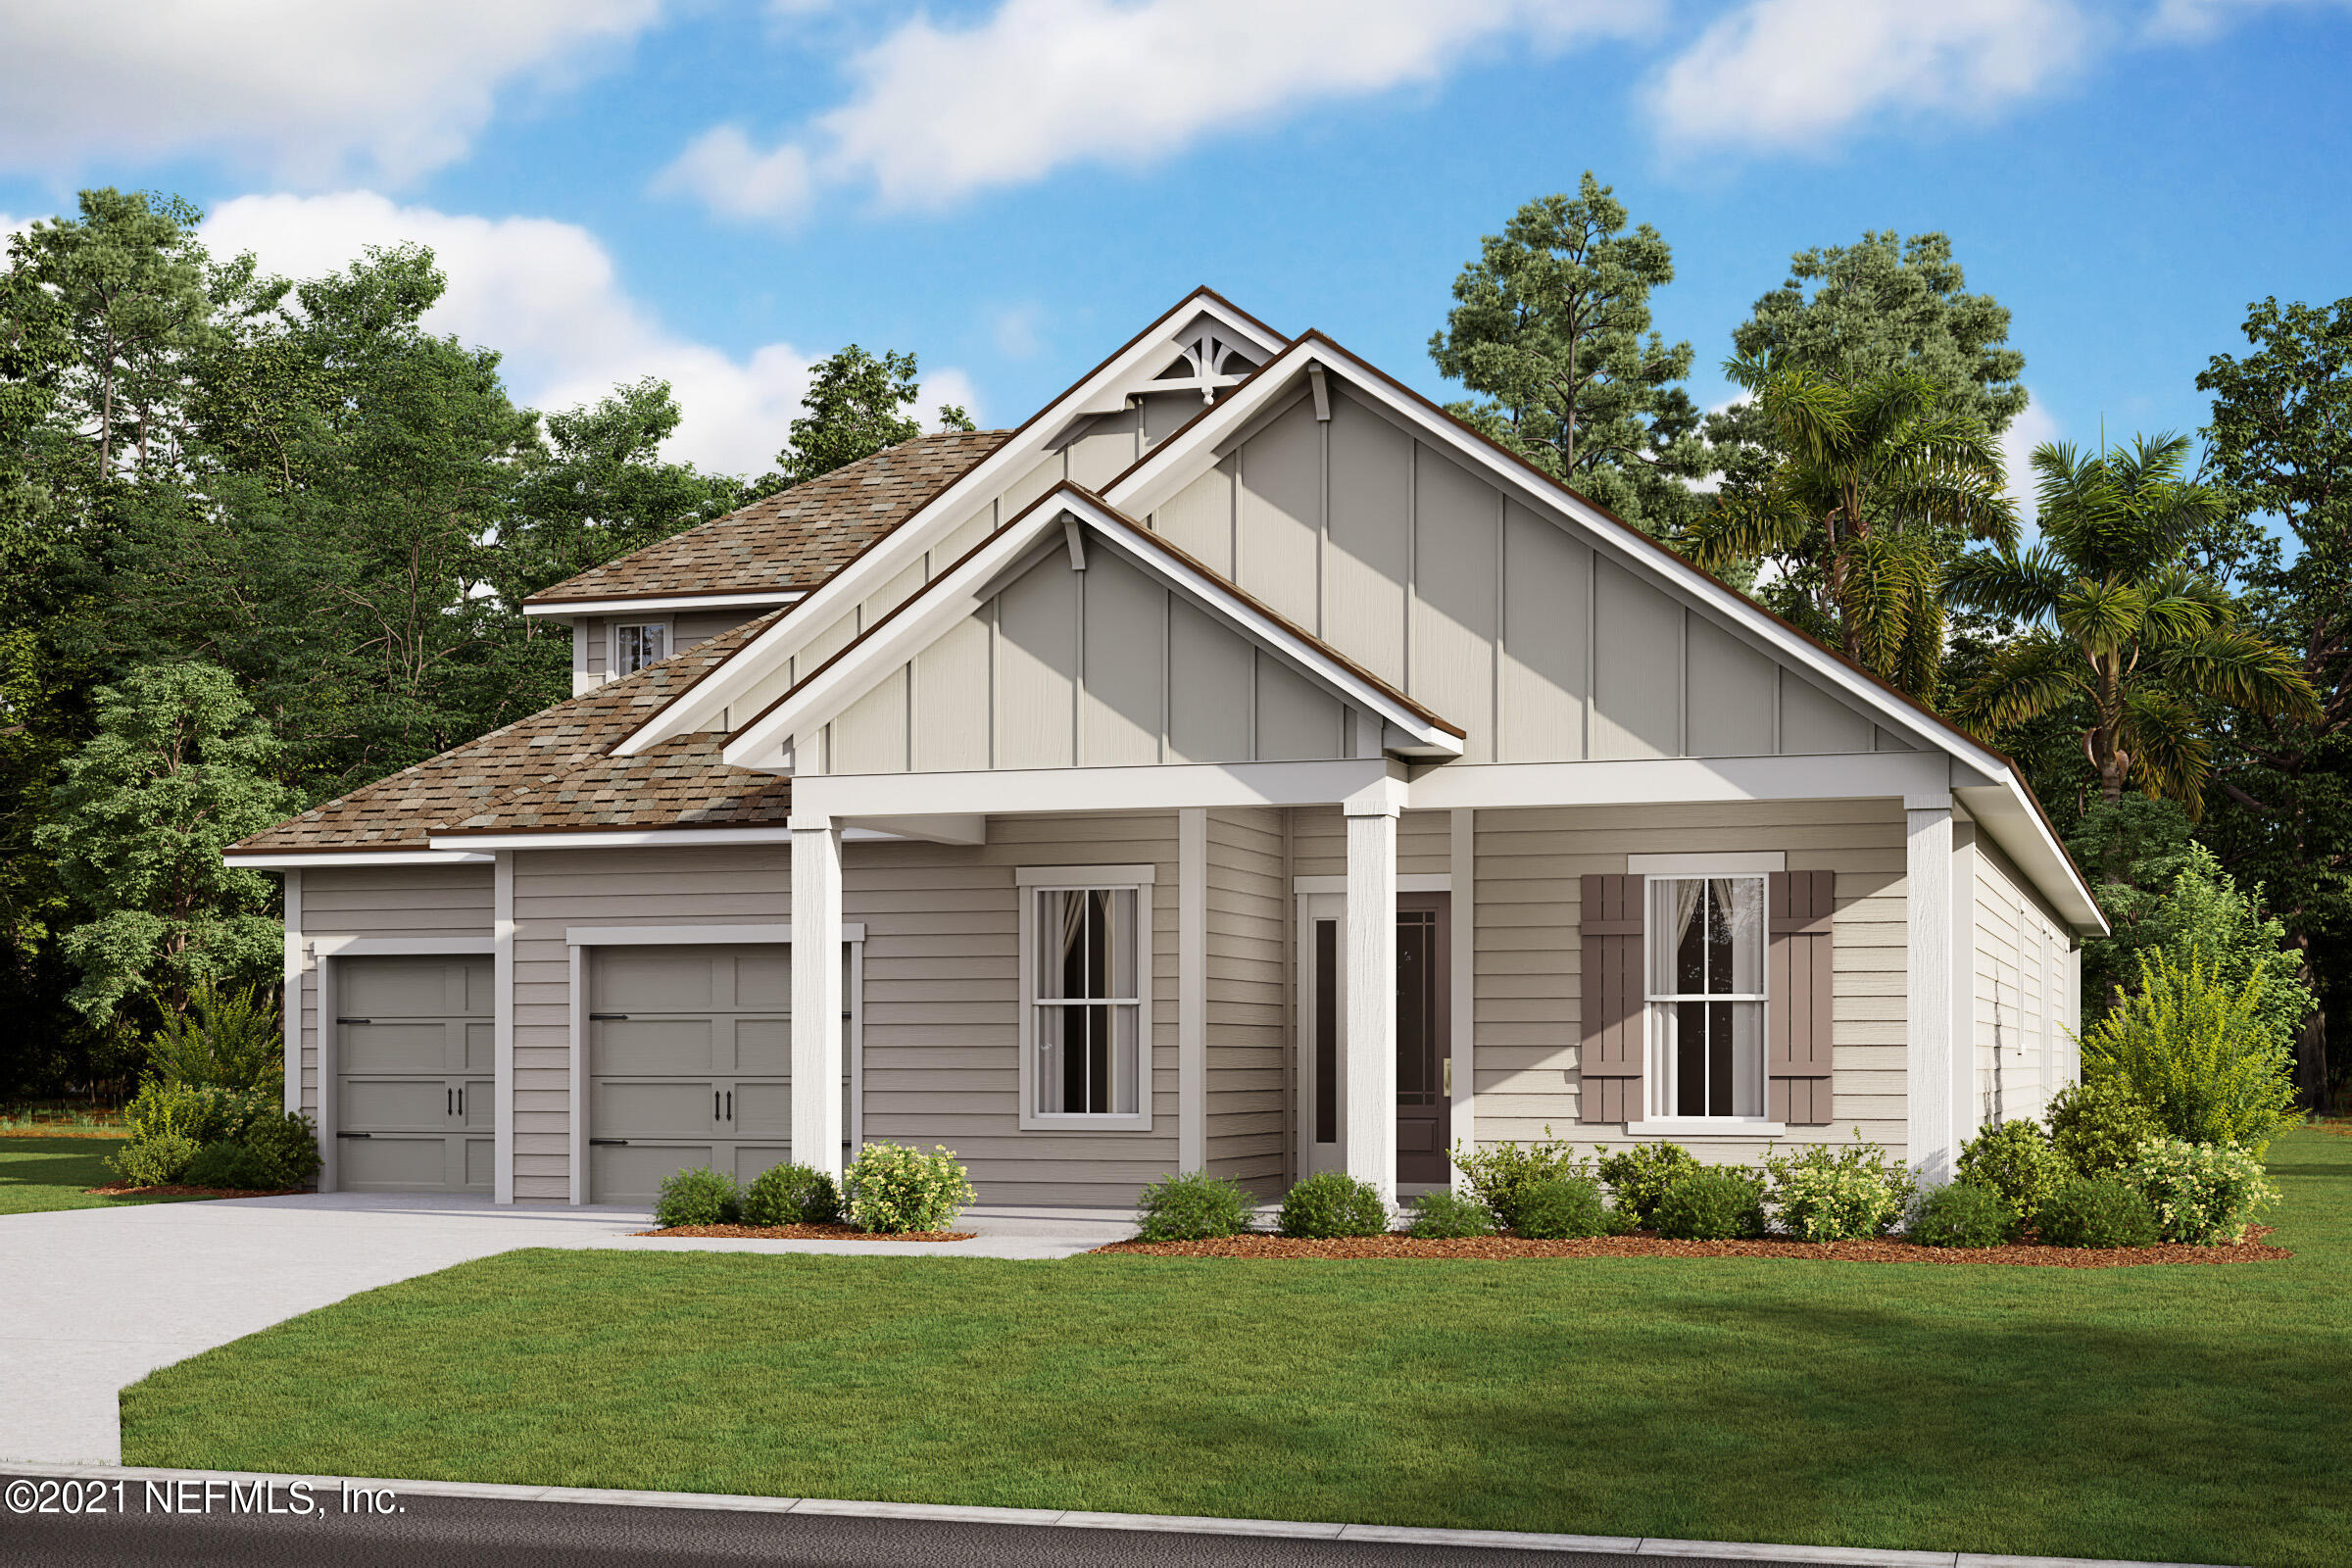 157 POTTERS MILL, PONTE VEDRA, FLORIDA 32081, 4 Bedrooms Bedrooms, ,4 BathroomsBathrooms,Residential,For sale,POTTERS MILL,1132914